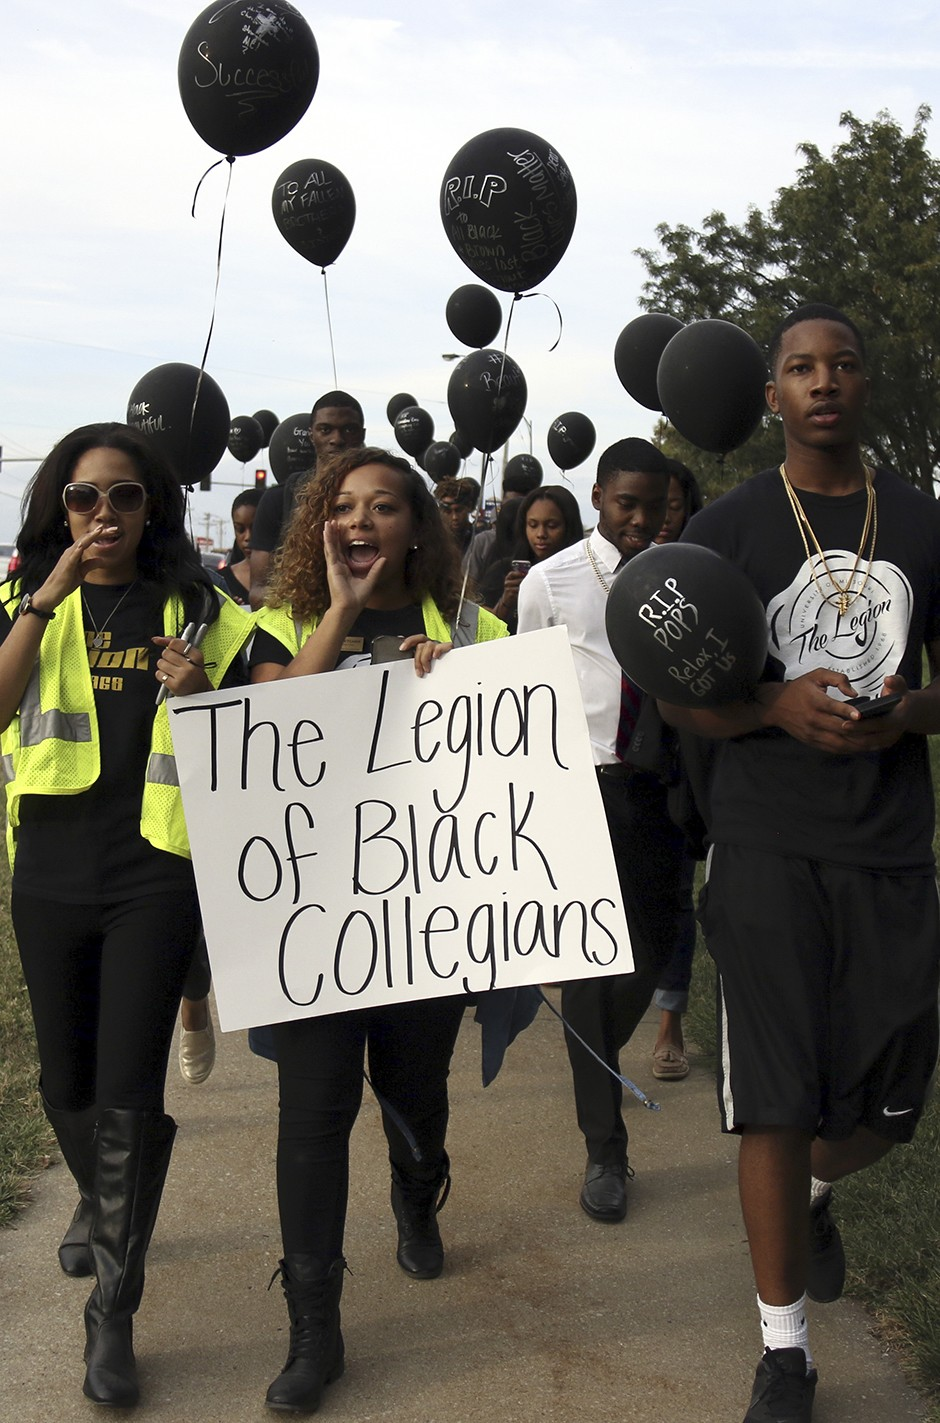 Legion of Black Collegians marching down the street.